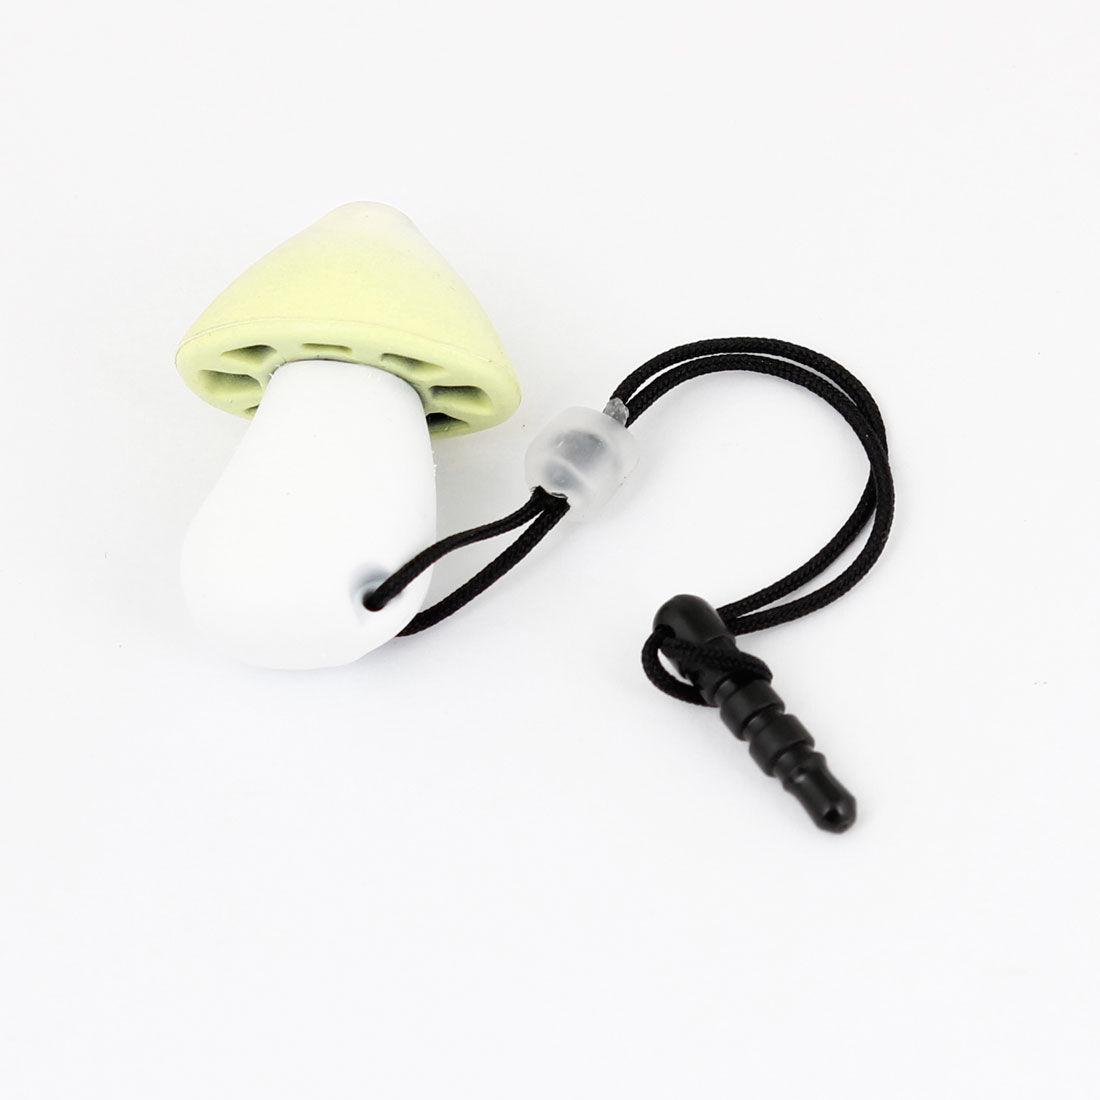 Yellow White Mushroom Design Phone 3.5mm Earphone Ear Cap Anti Dust Plug